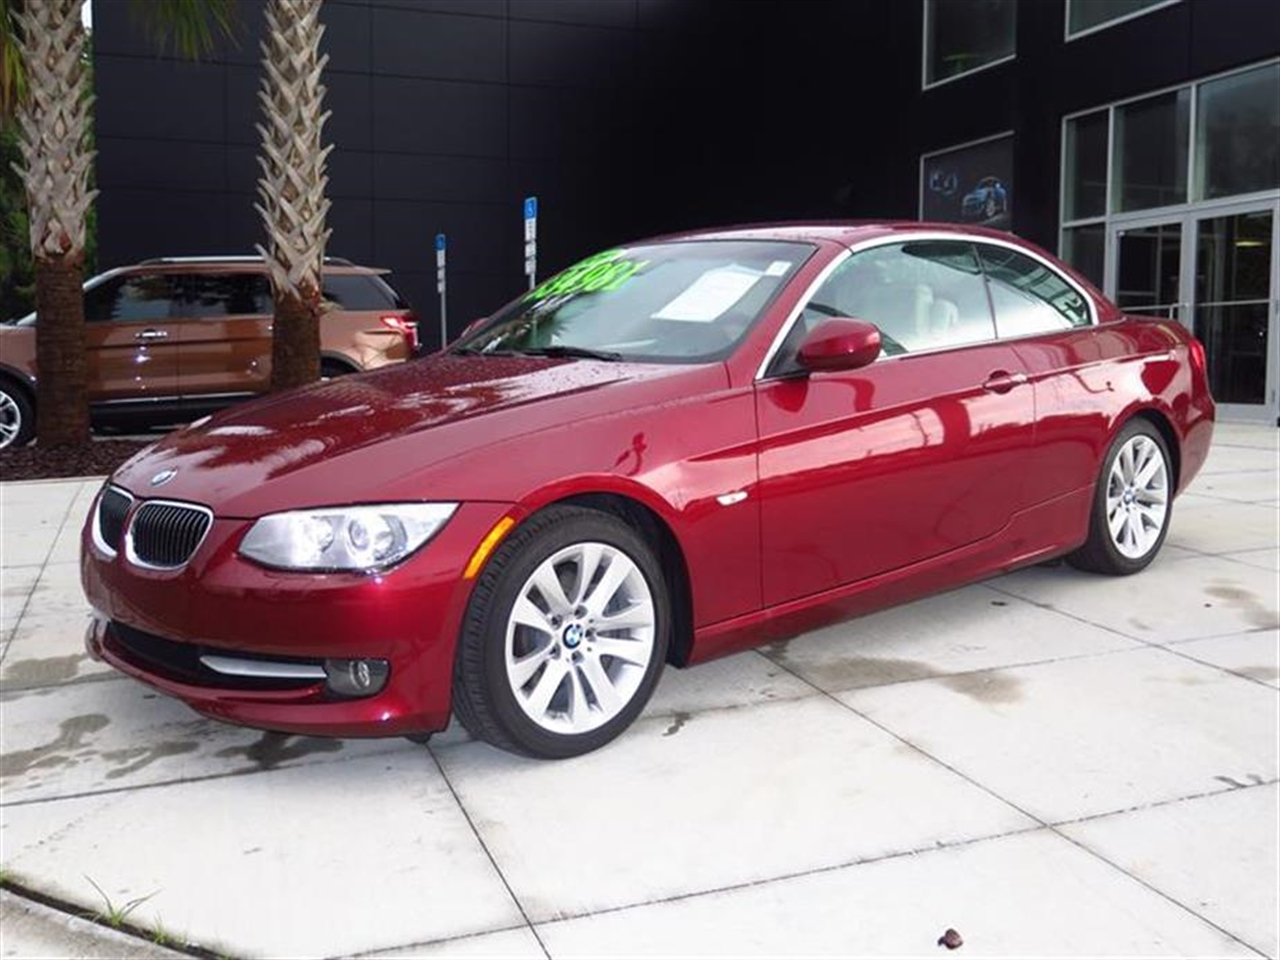 2011 BMW 3 SERIES 2dr Conv 328i 42264 miles 10-way power front bucket seats with 2-way manual head